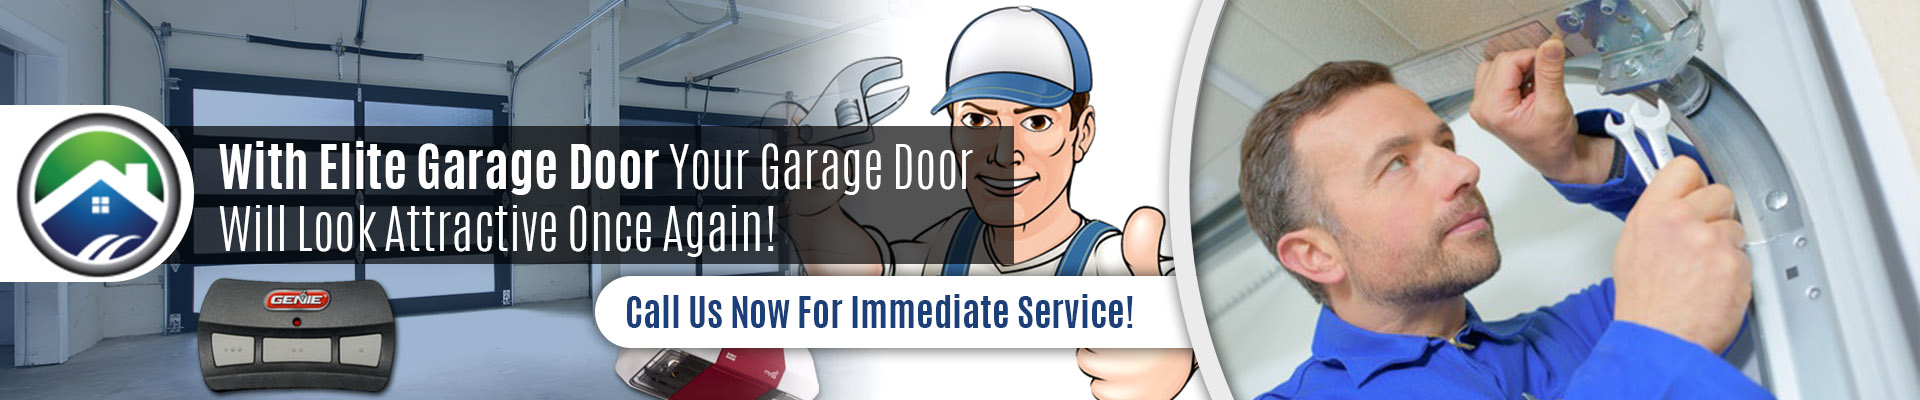 Garage Door Repair Burien Wa Elite Garage Door Amp Gate